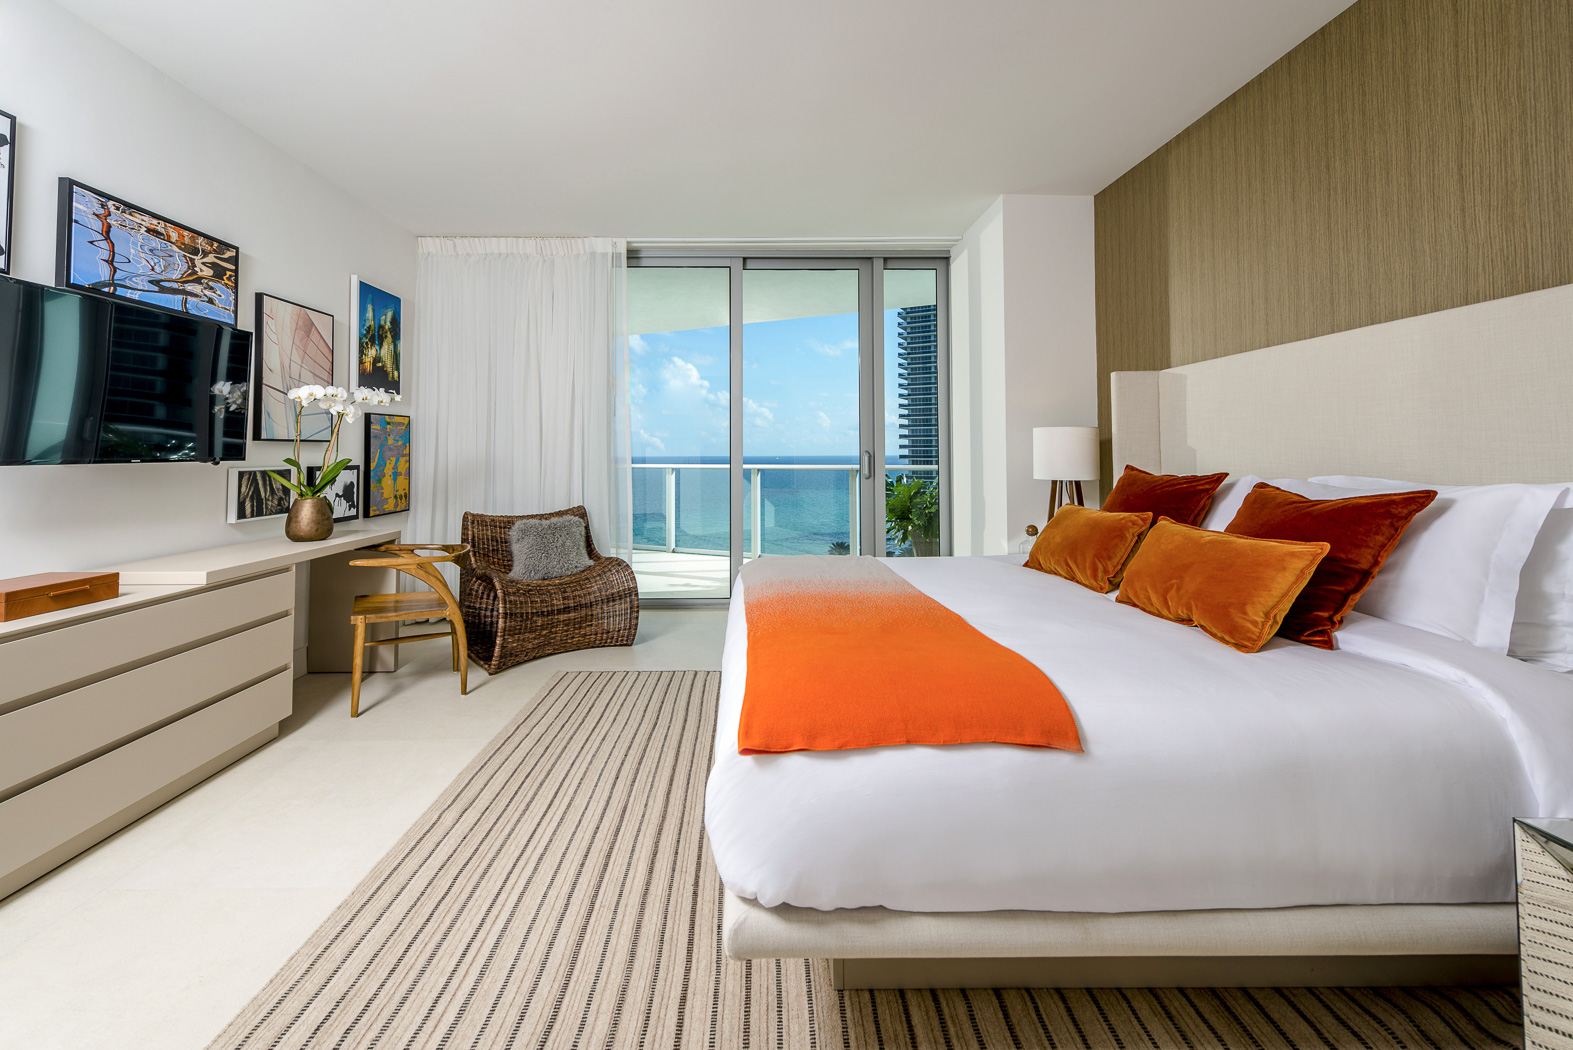 one bedroom suite, with dresser and desk. Mounted TV and queen sized bed, balcony with ocean view